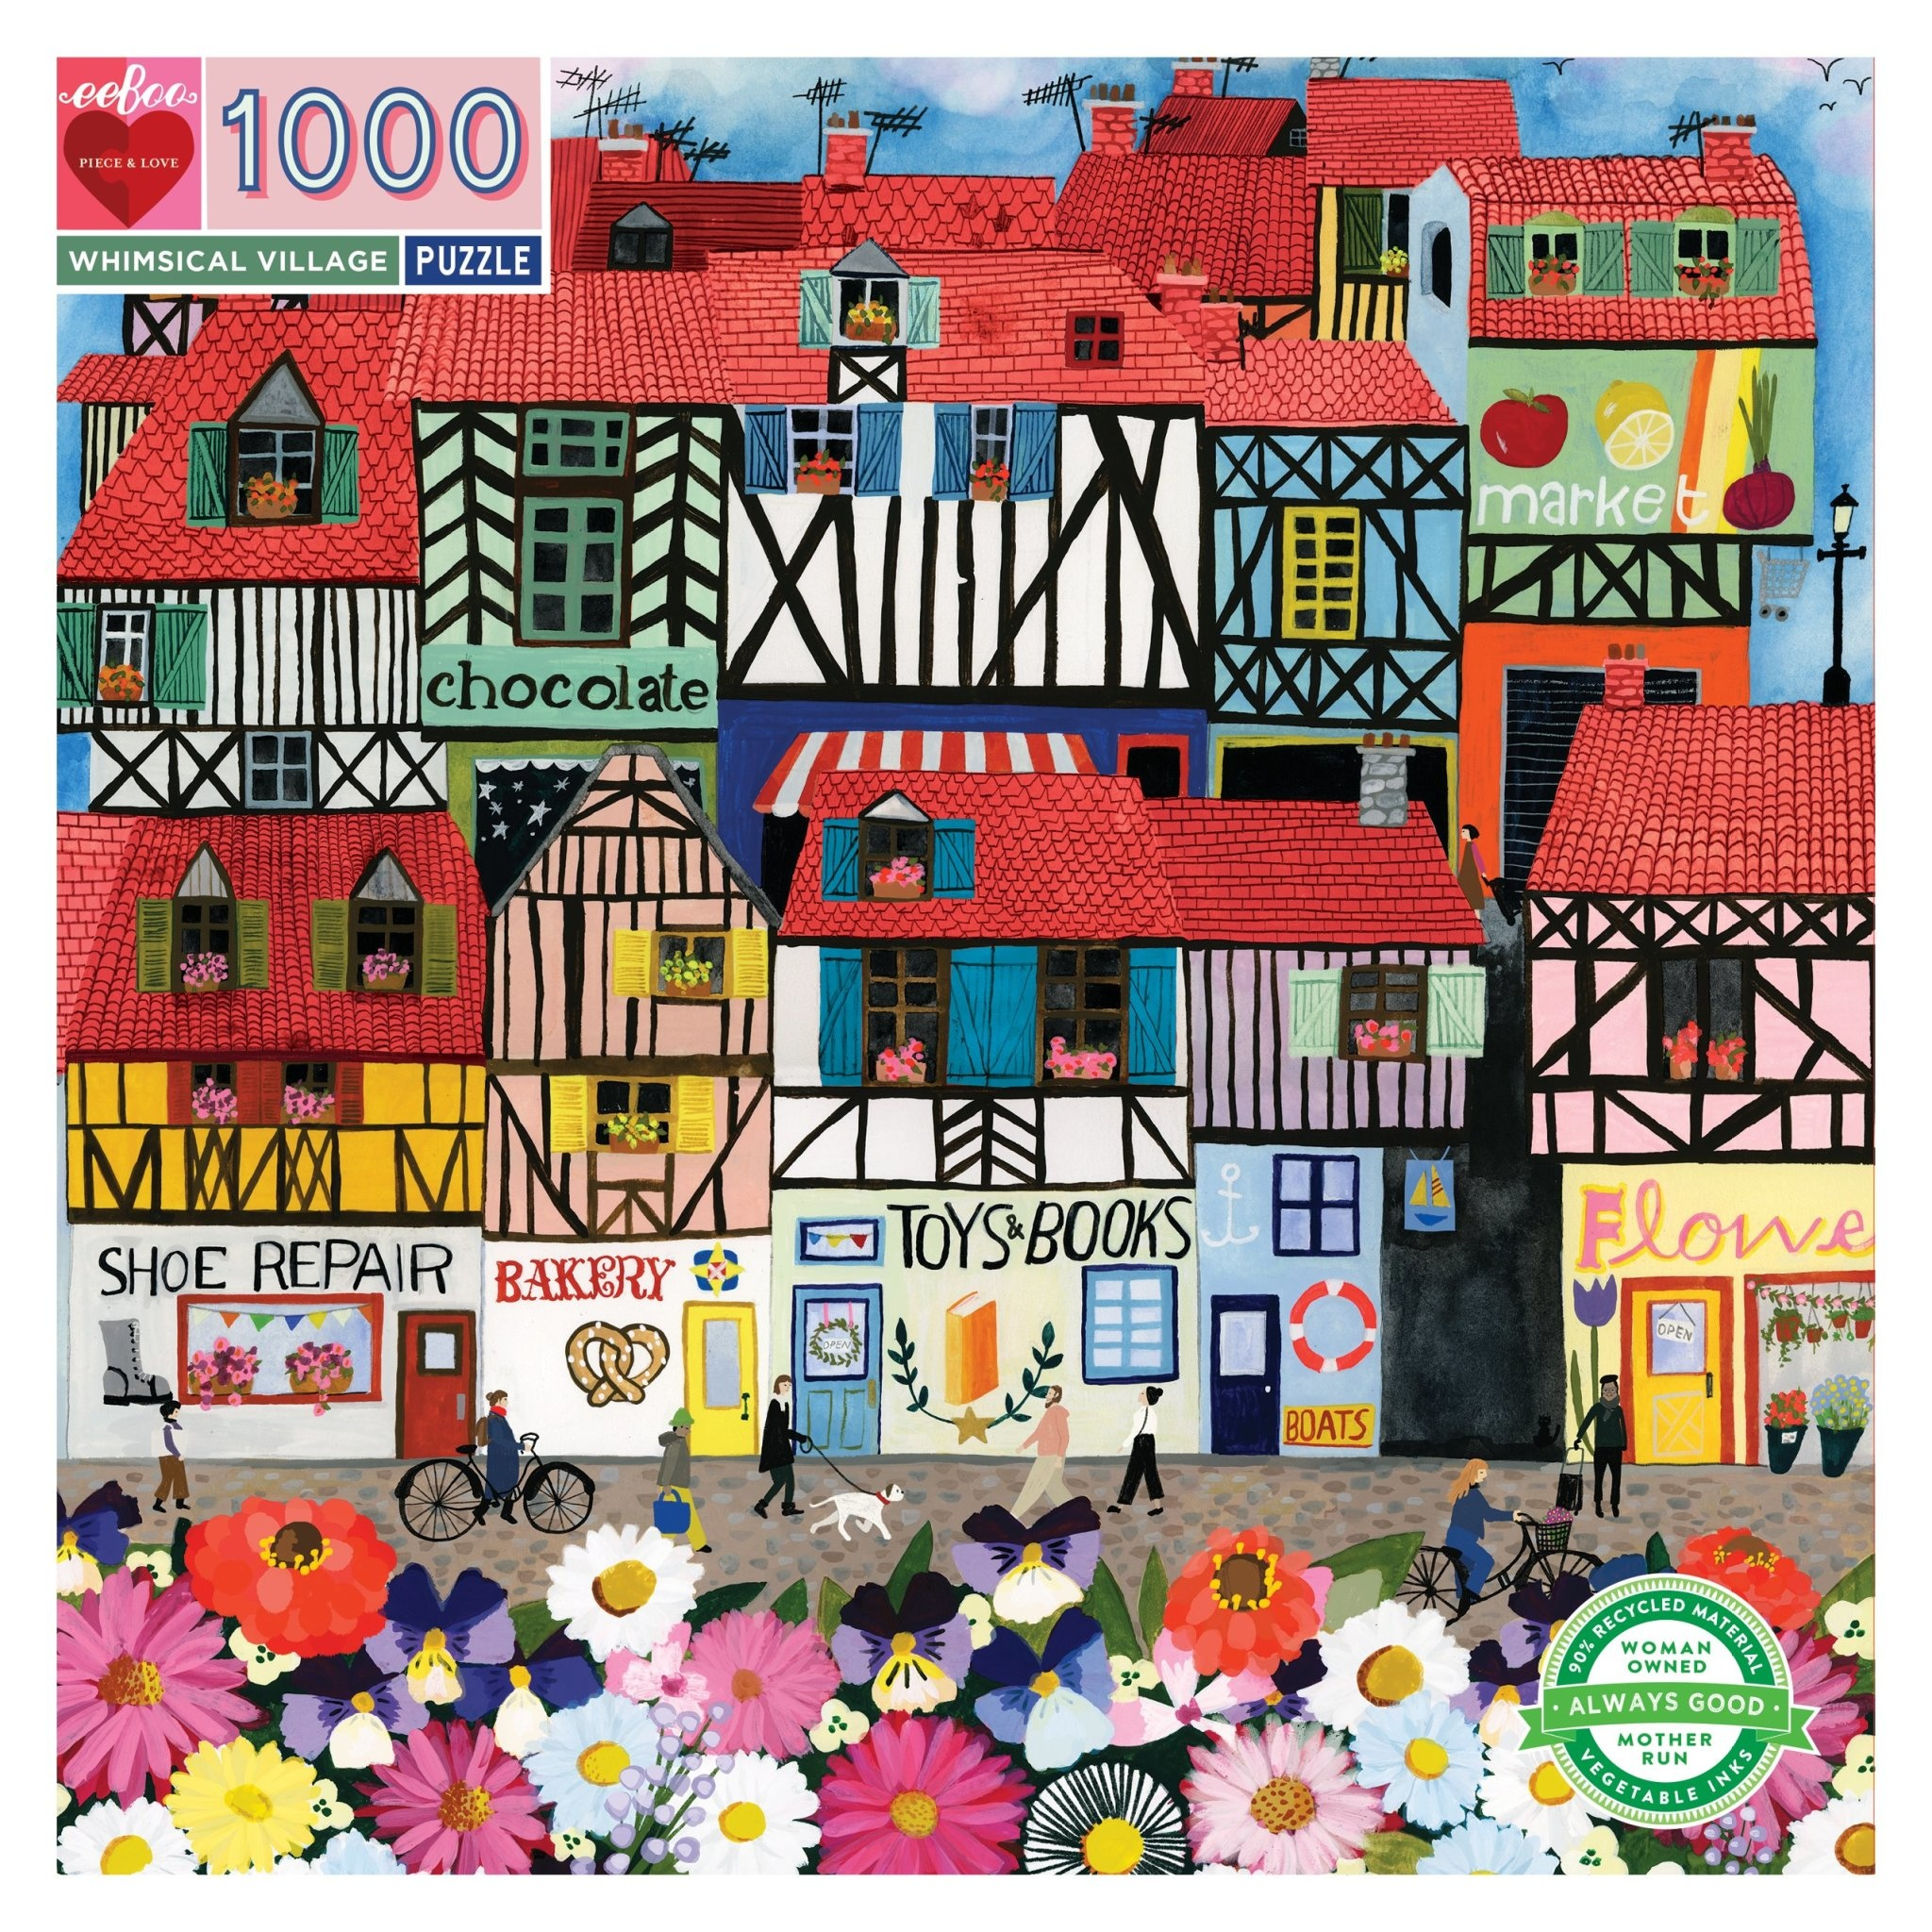 Whimsical Village (1000 Piece Puzzle)